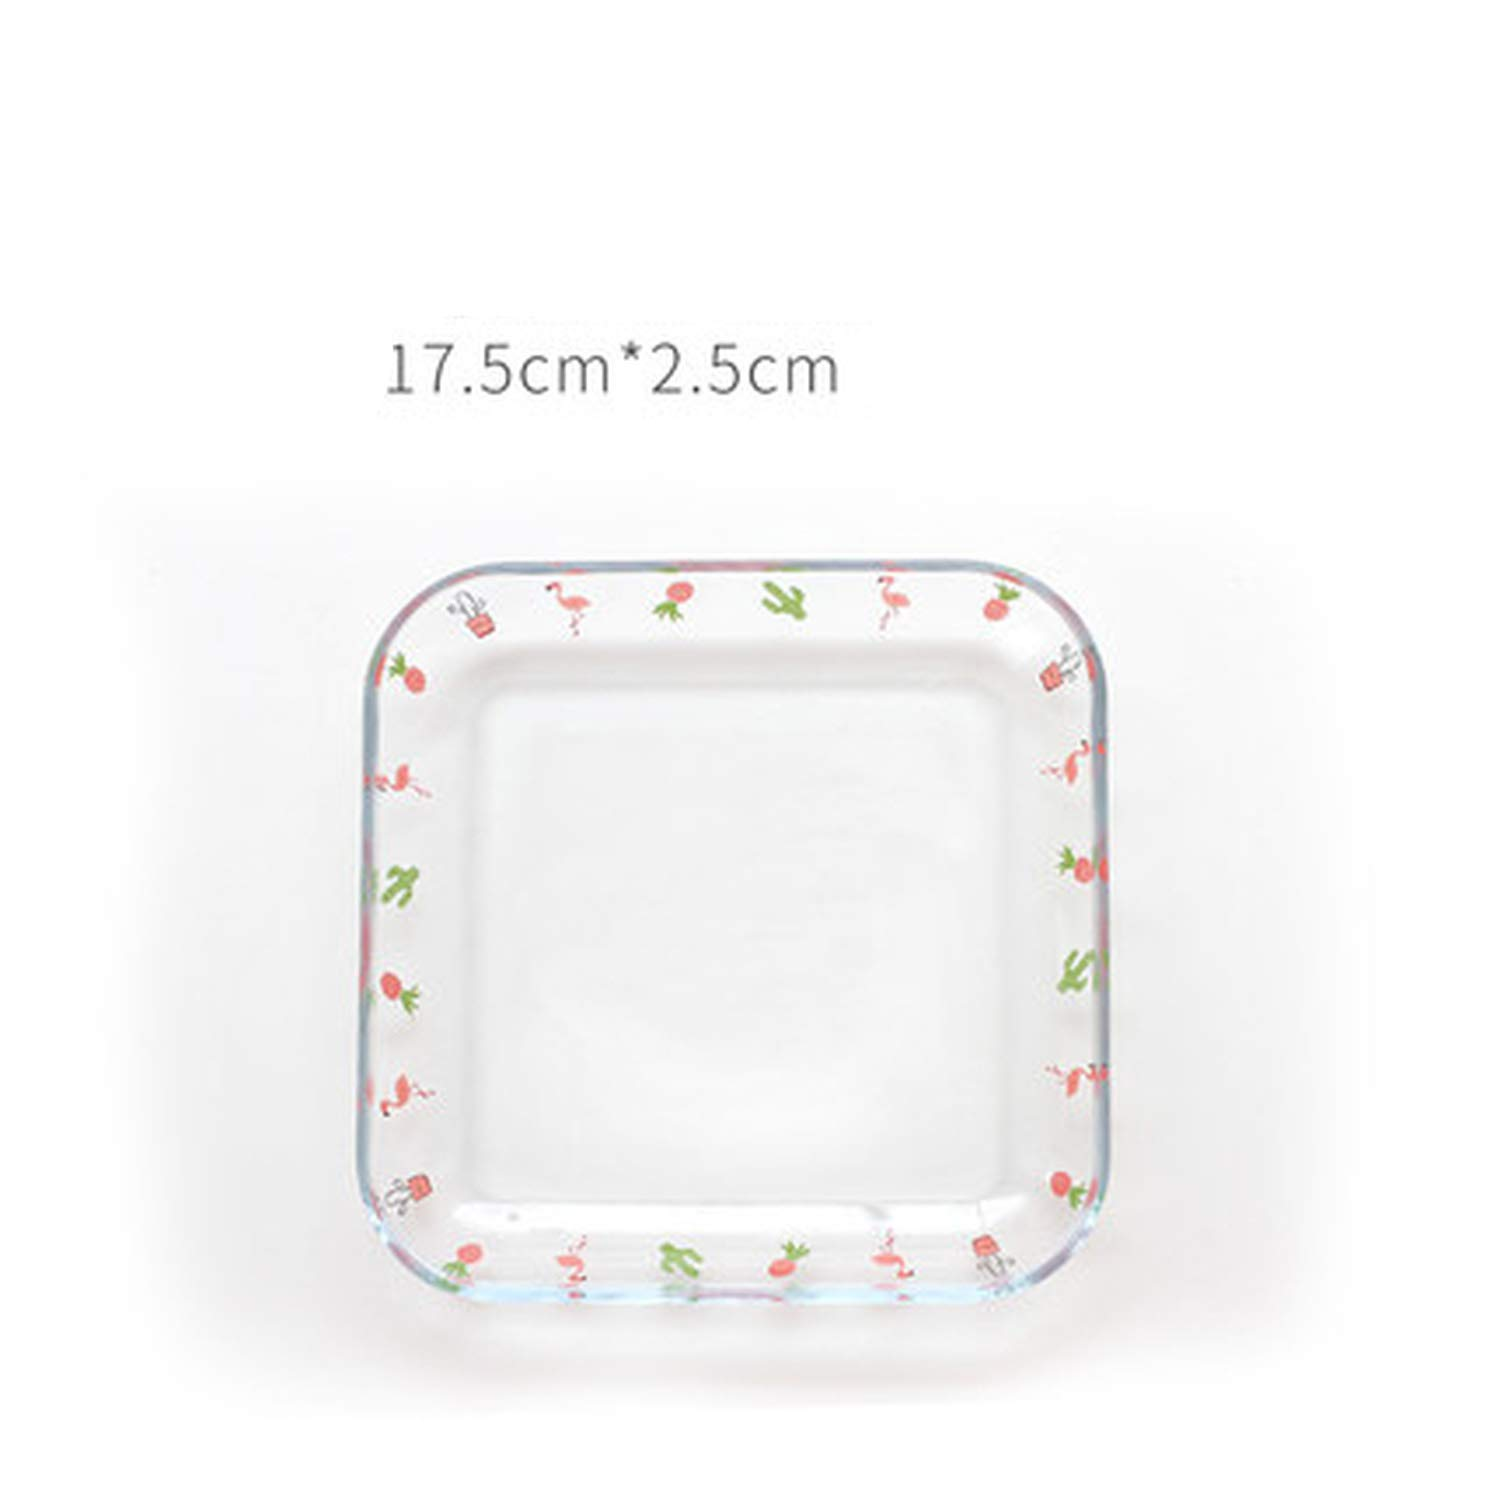 Flamingo Fish Plate heat resistant tempered glass Food tray fbaked dish plate fruit salad Plate,7 inch Palte